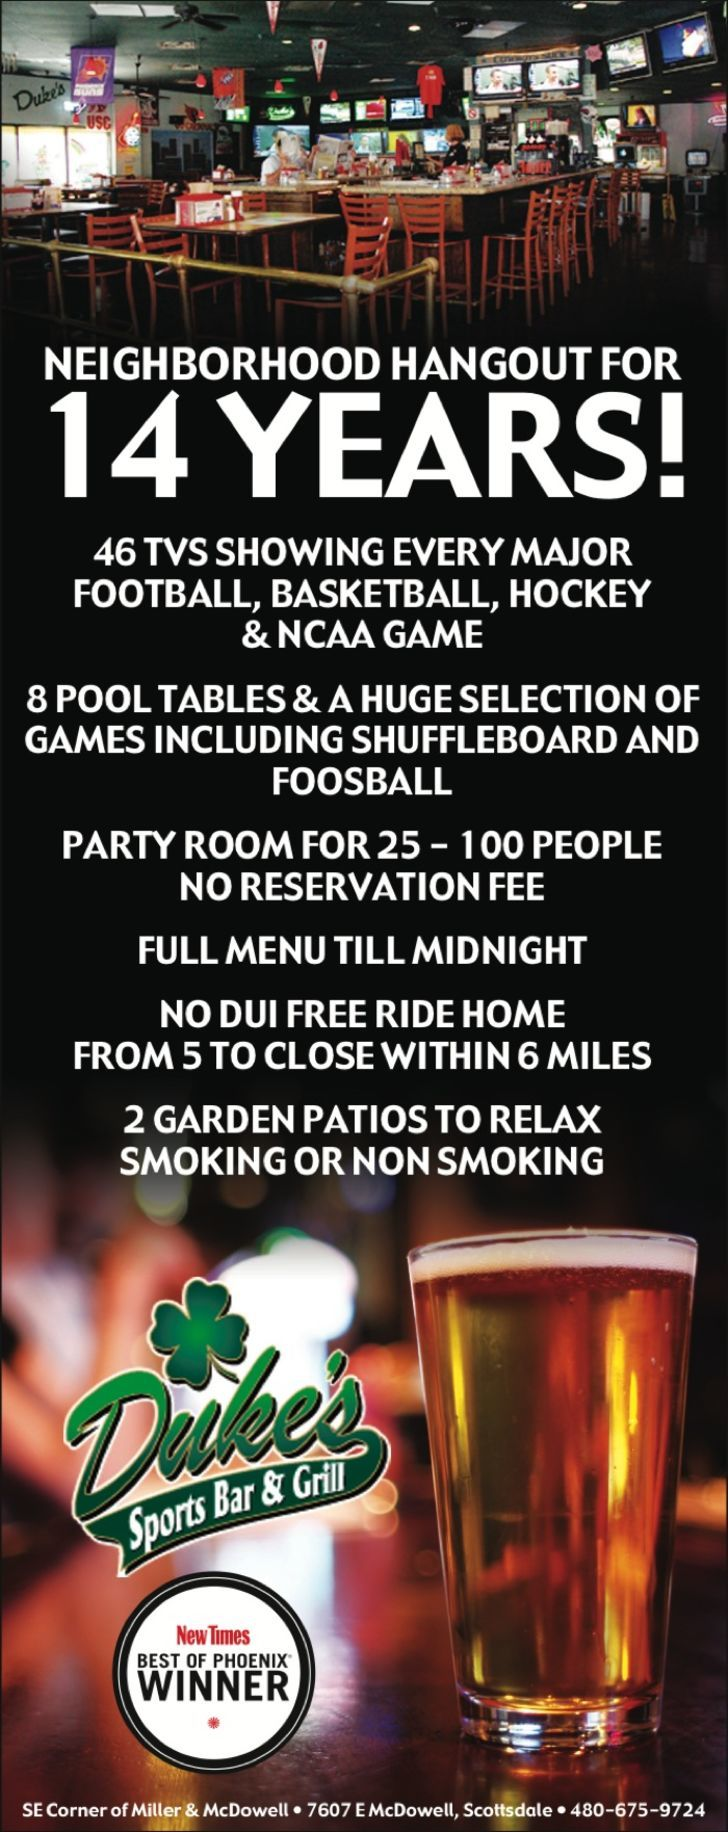 Dukes Sports Bar & Grill